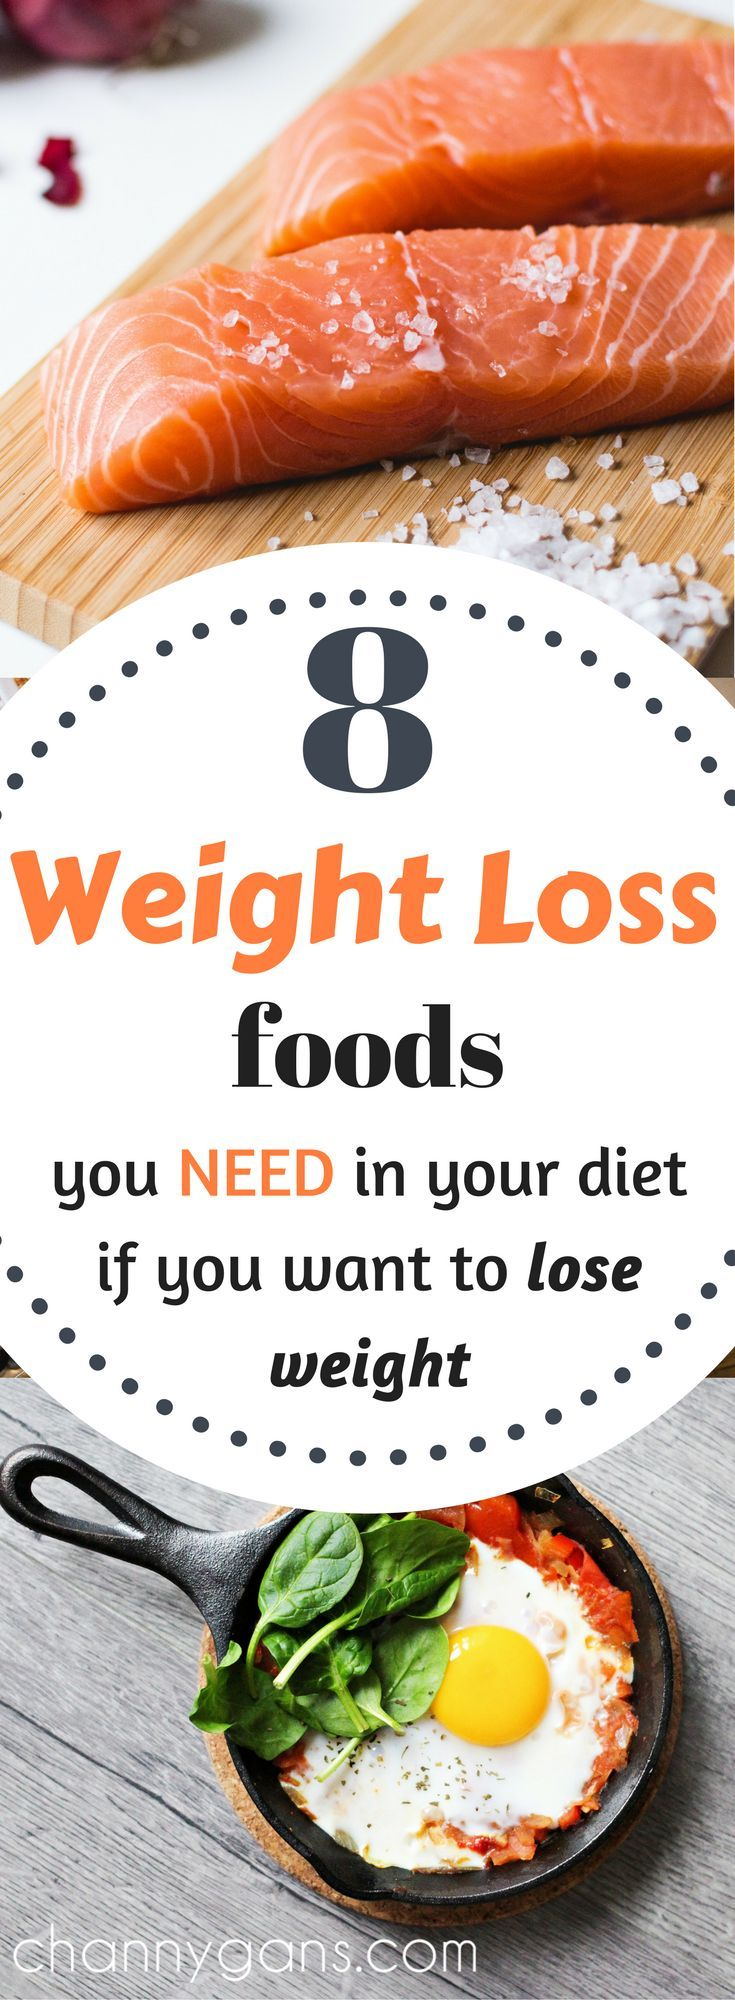 These foods for weight loss are AWESOME! Now I can incorporate these foods into my diet and make meals that taste GREAT! I'm definitely repinning! #weightloss